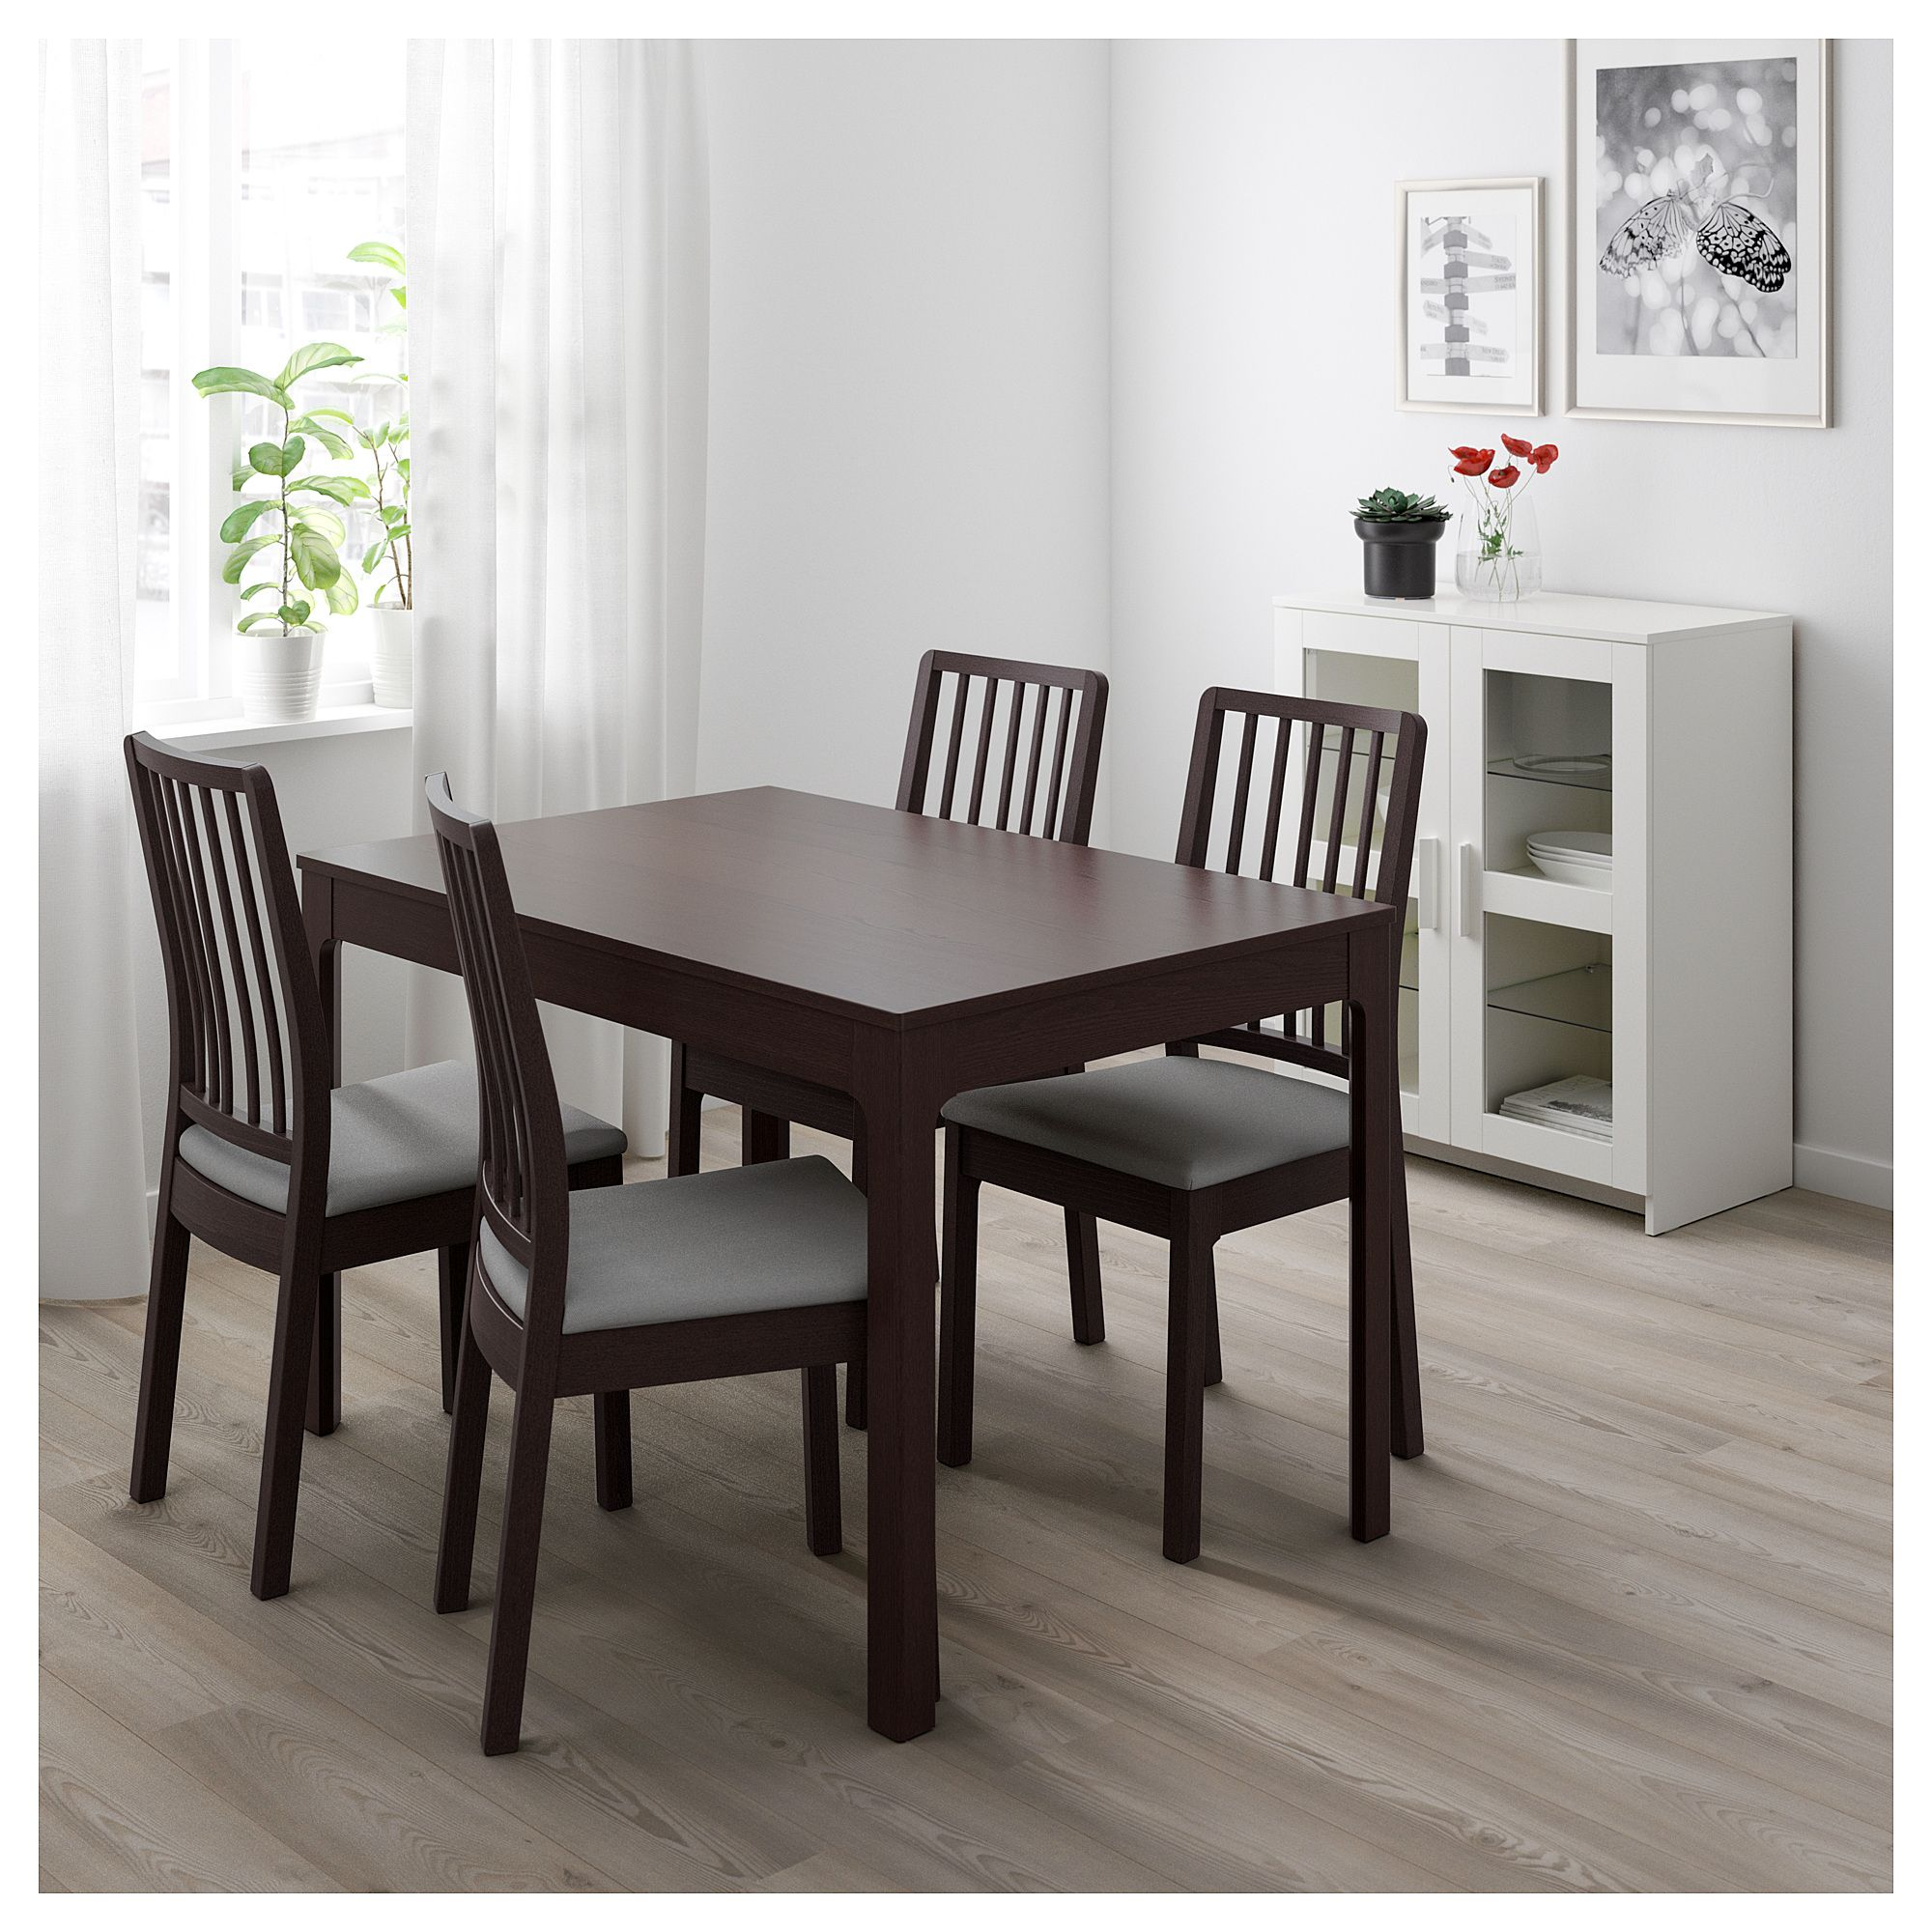 IKEA EKEDALEN Extendable table dark brown Ikea